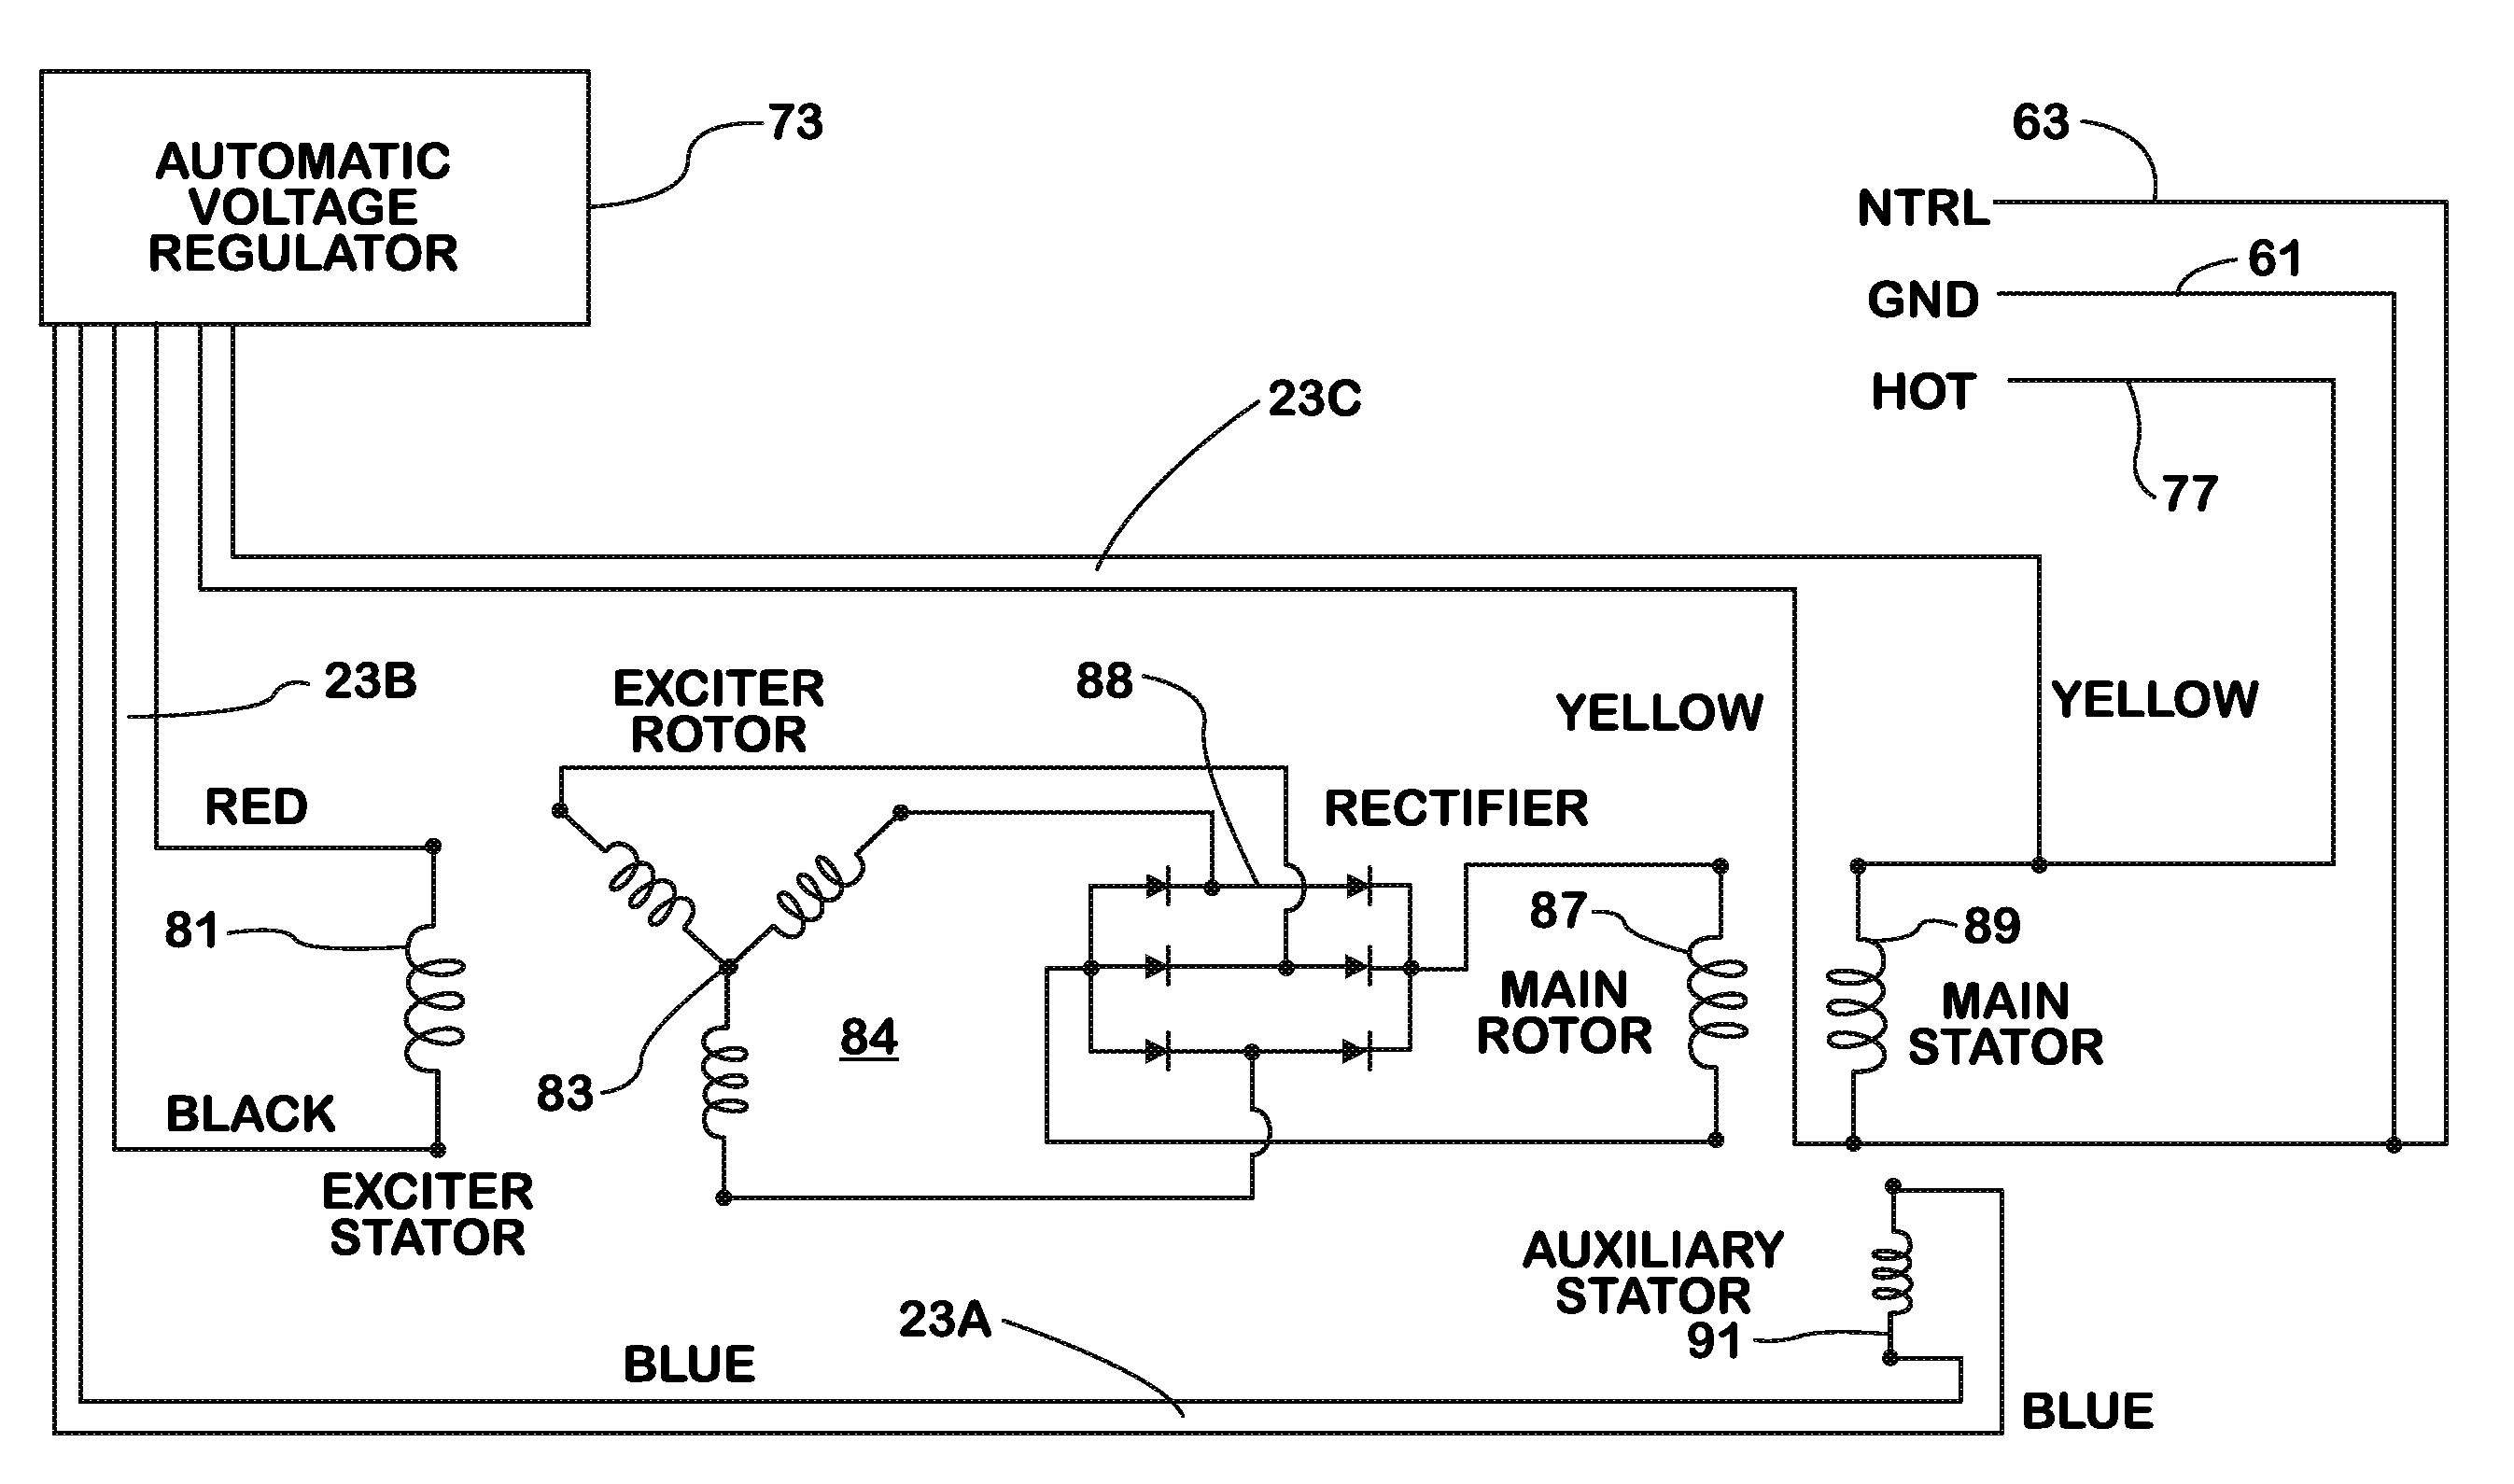 patent us8283942 auxiliary power unit diagnostic tool google inside ac electrical wiring diagrams generator?resize\=665%2C393\&ssl\=1 onan 4000 generator wiring diagram 3 phase wiring diagrams onan 4000 generator wiring diagram at couponss.co